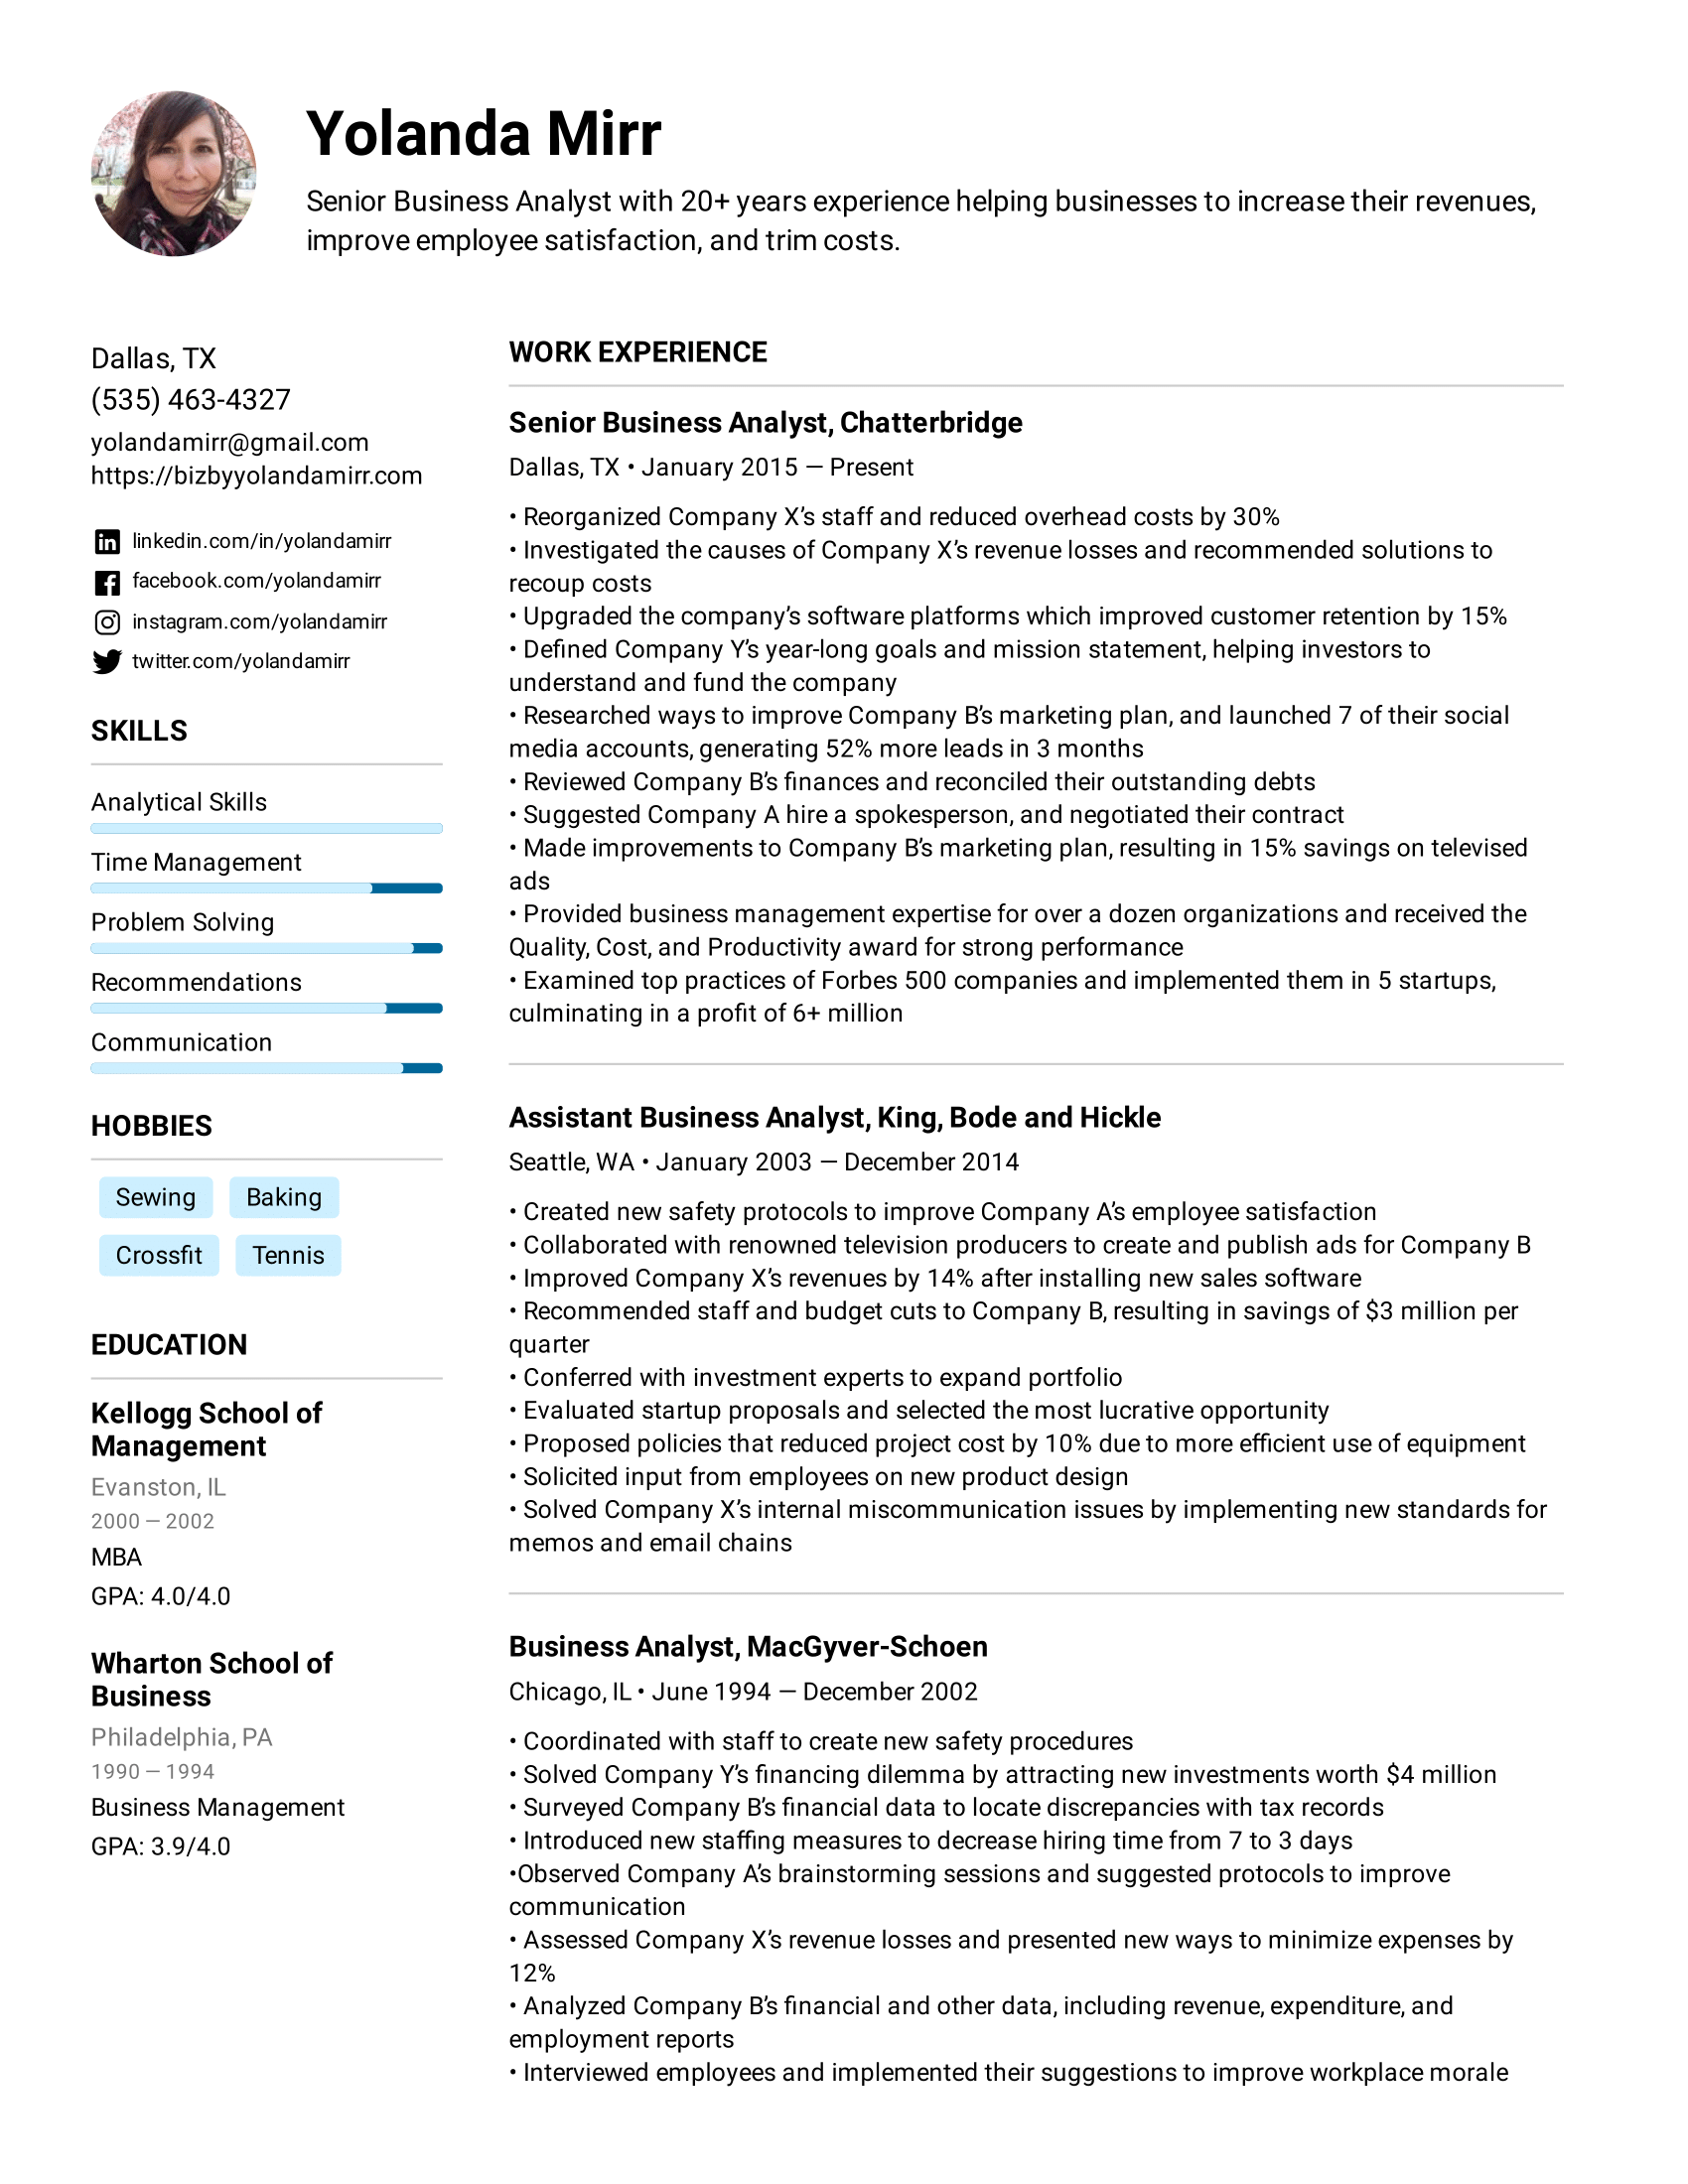 What things do people put in the skills section of their resumes?. Business Analyst Resume Example Writing Tips For 2021